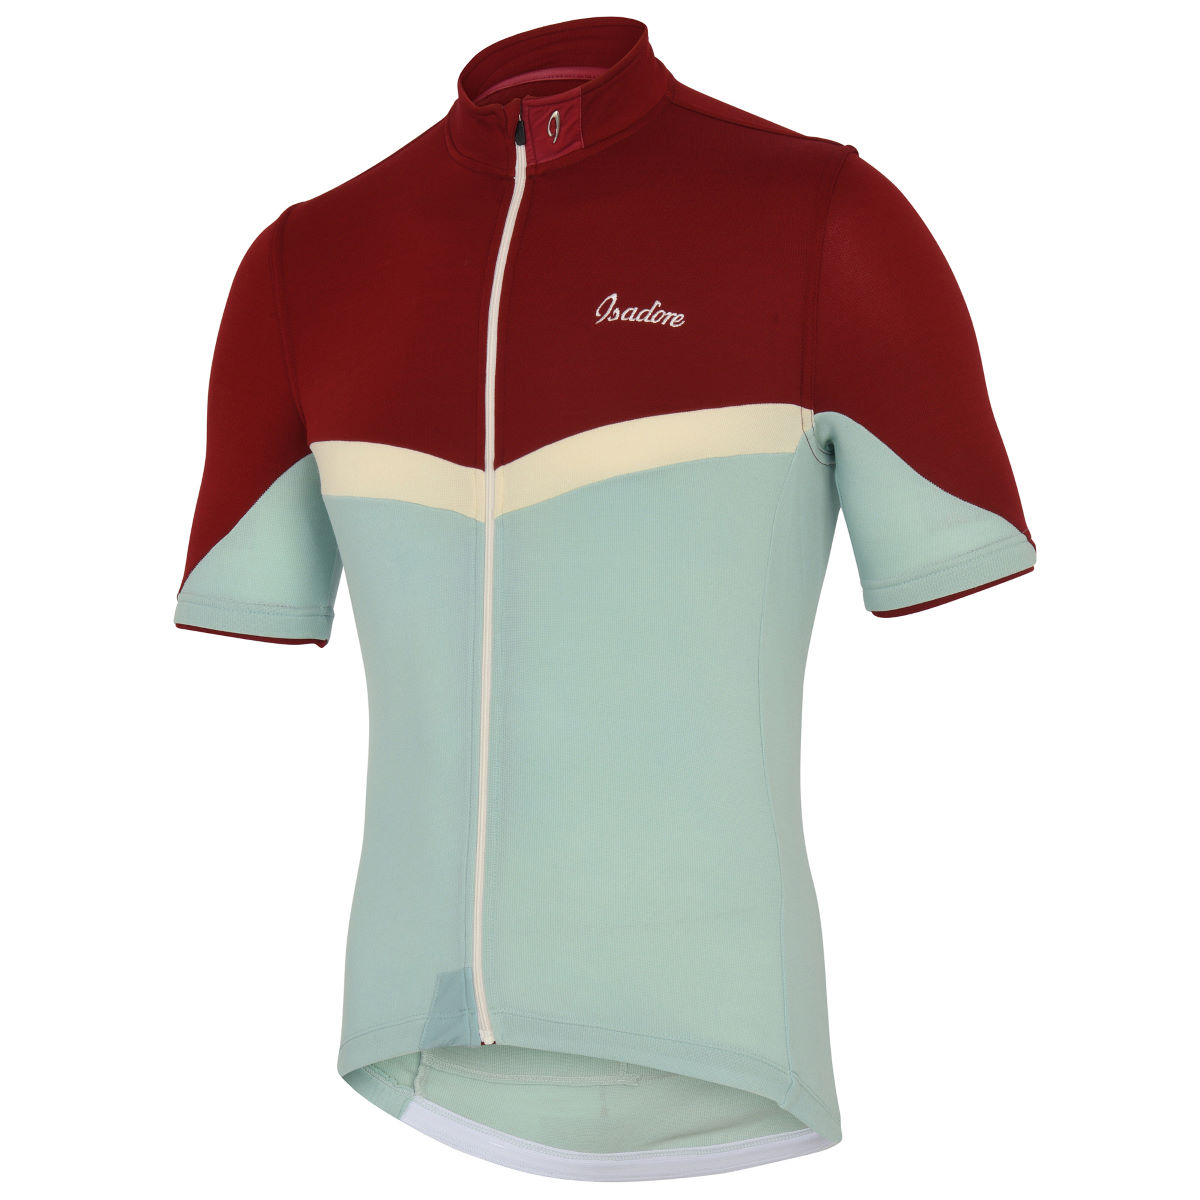 Maillot Isadore La Flamme (manches courtes) - XXL Blue/Red Maillots